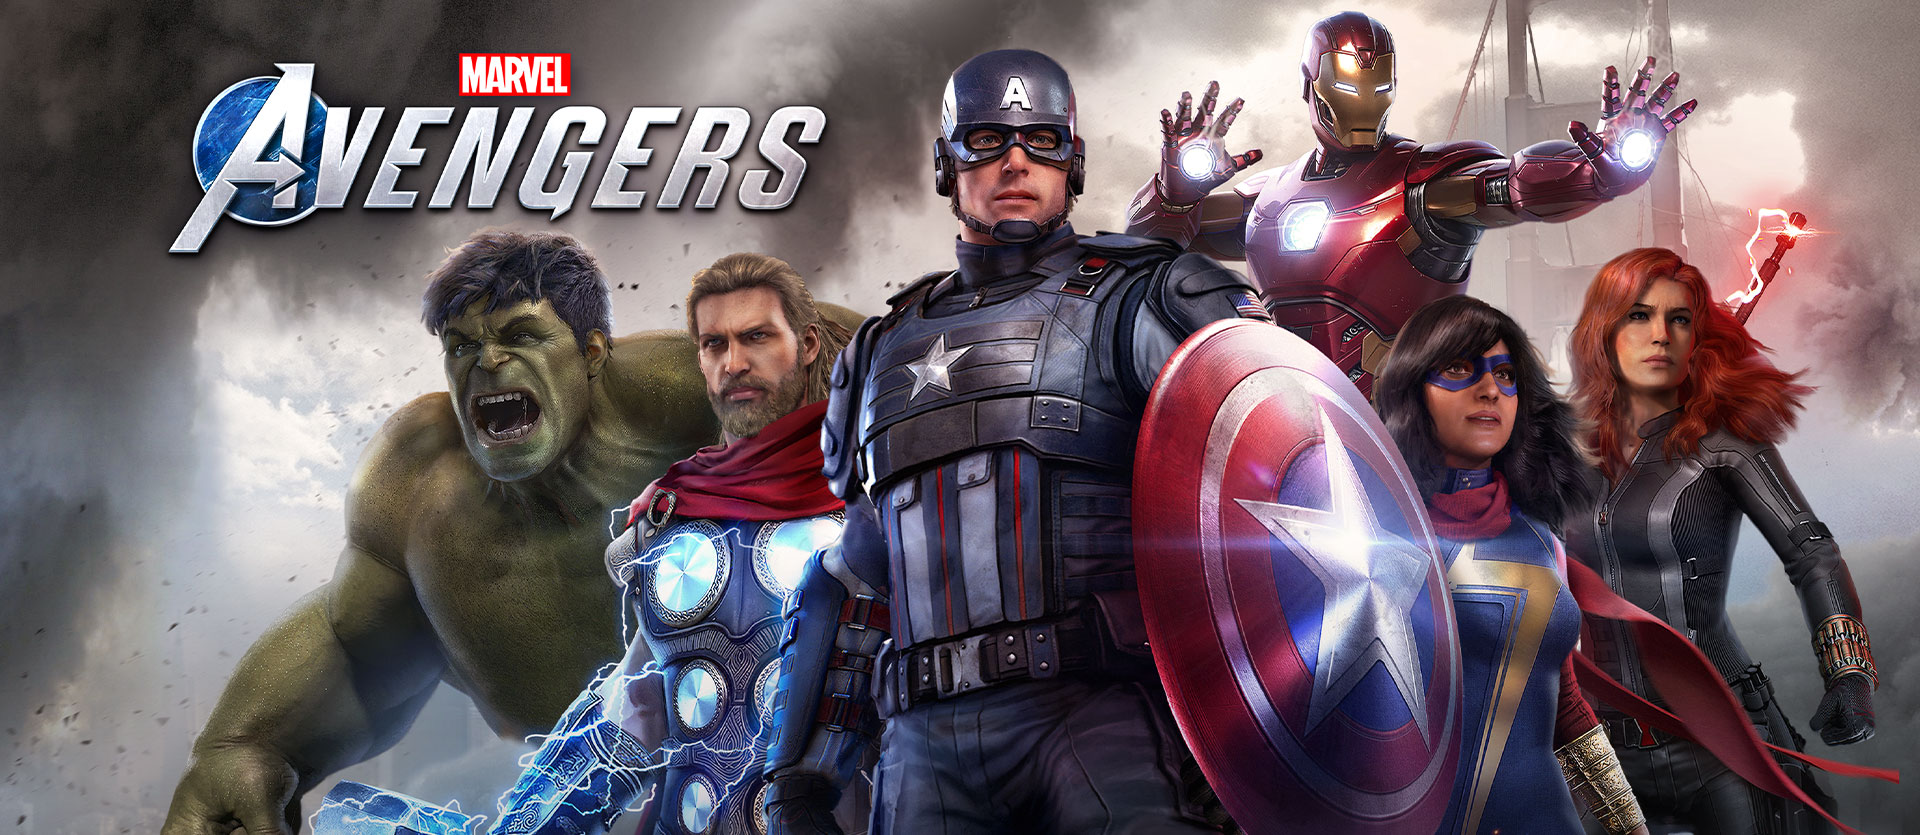 Marvel Avengers-logotypen, Hulken, Thor, Captain America, Ms. Marvel, Iron Man och Black Widow poserar framför Golden Gate-bron under en storm